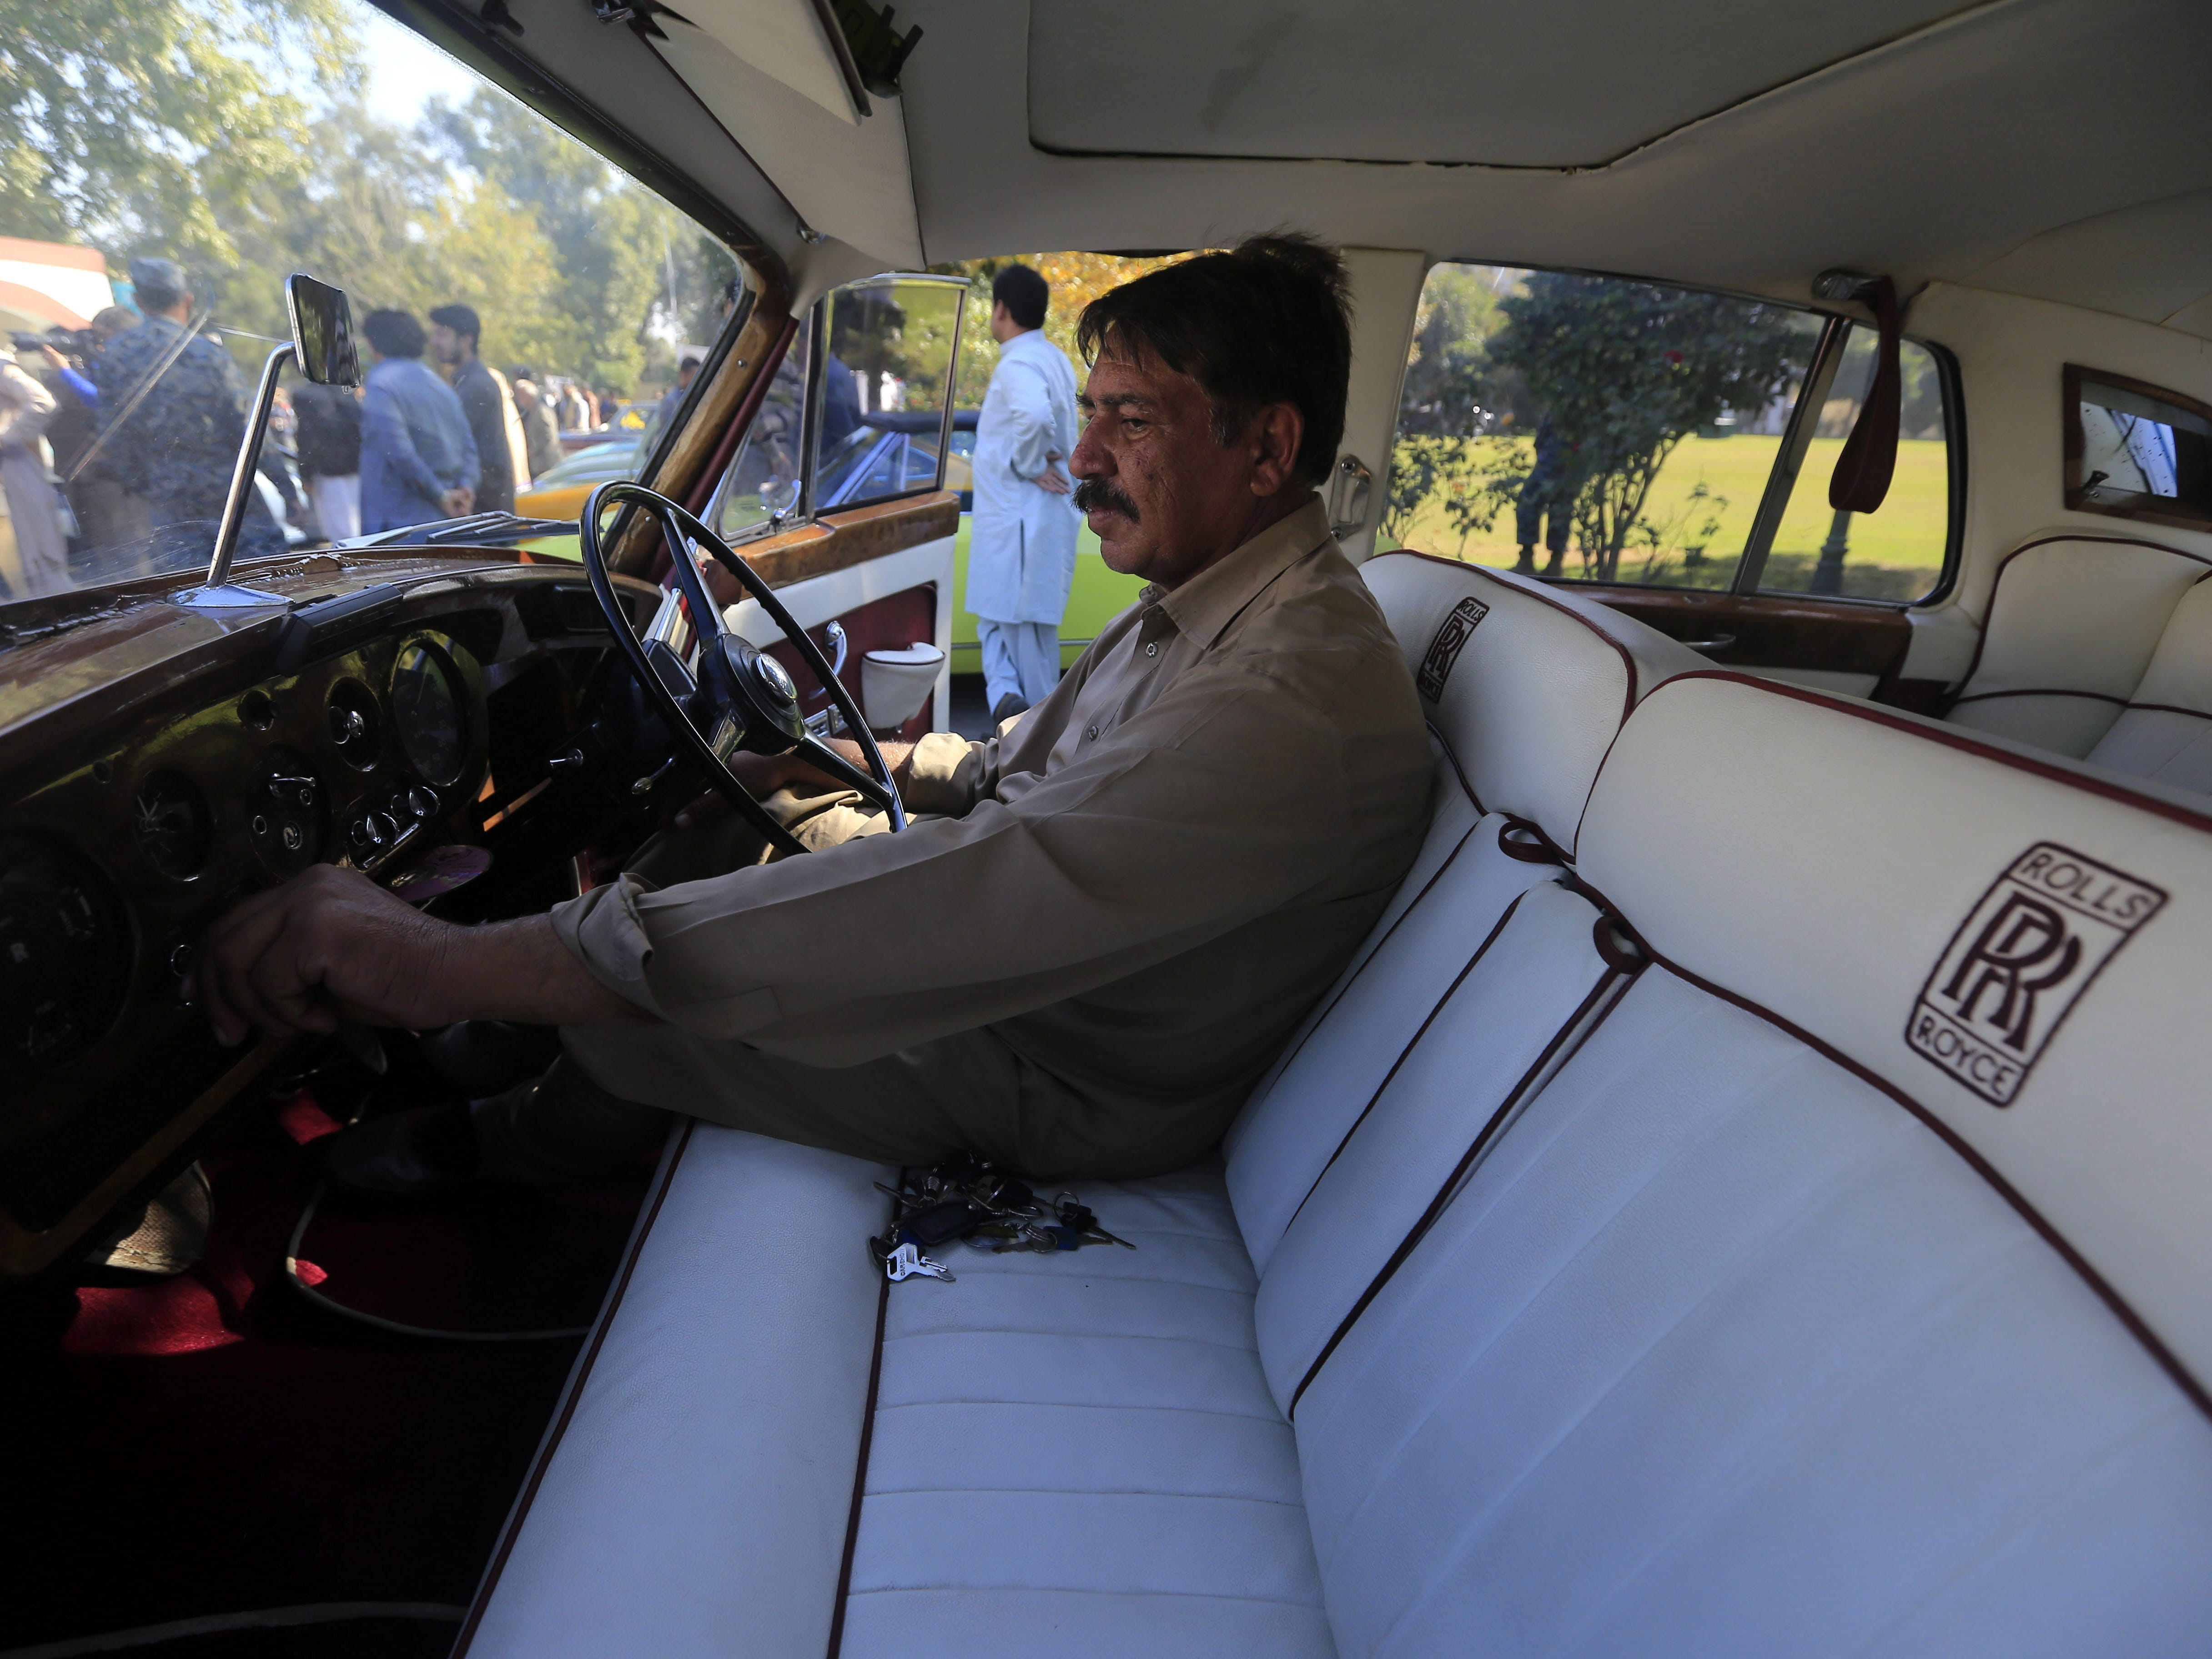 epa07185127 A man sits inside a Rolls Royce oldtimer on display during a show organized by the Vintage and Classic Car Club of Pakistan in Peshawar, Pakistan, 23 November 2018. More than 60 vintage and classic cars were on display from all across Pakistan, some coming all the way from Karachi and heading on to Khyber.  EPA-EFE/BILAWAL ARBAB ORG XMIT: PSH01